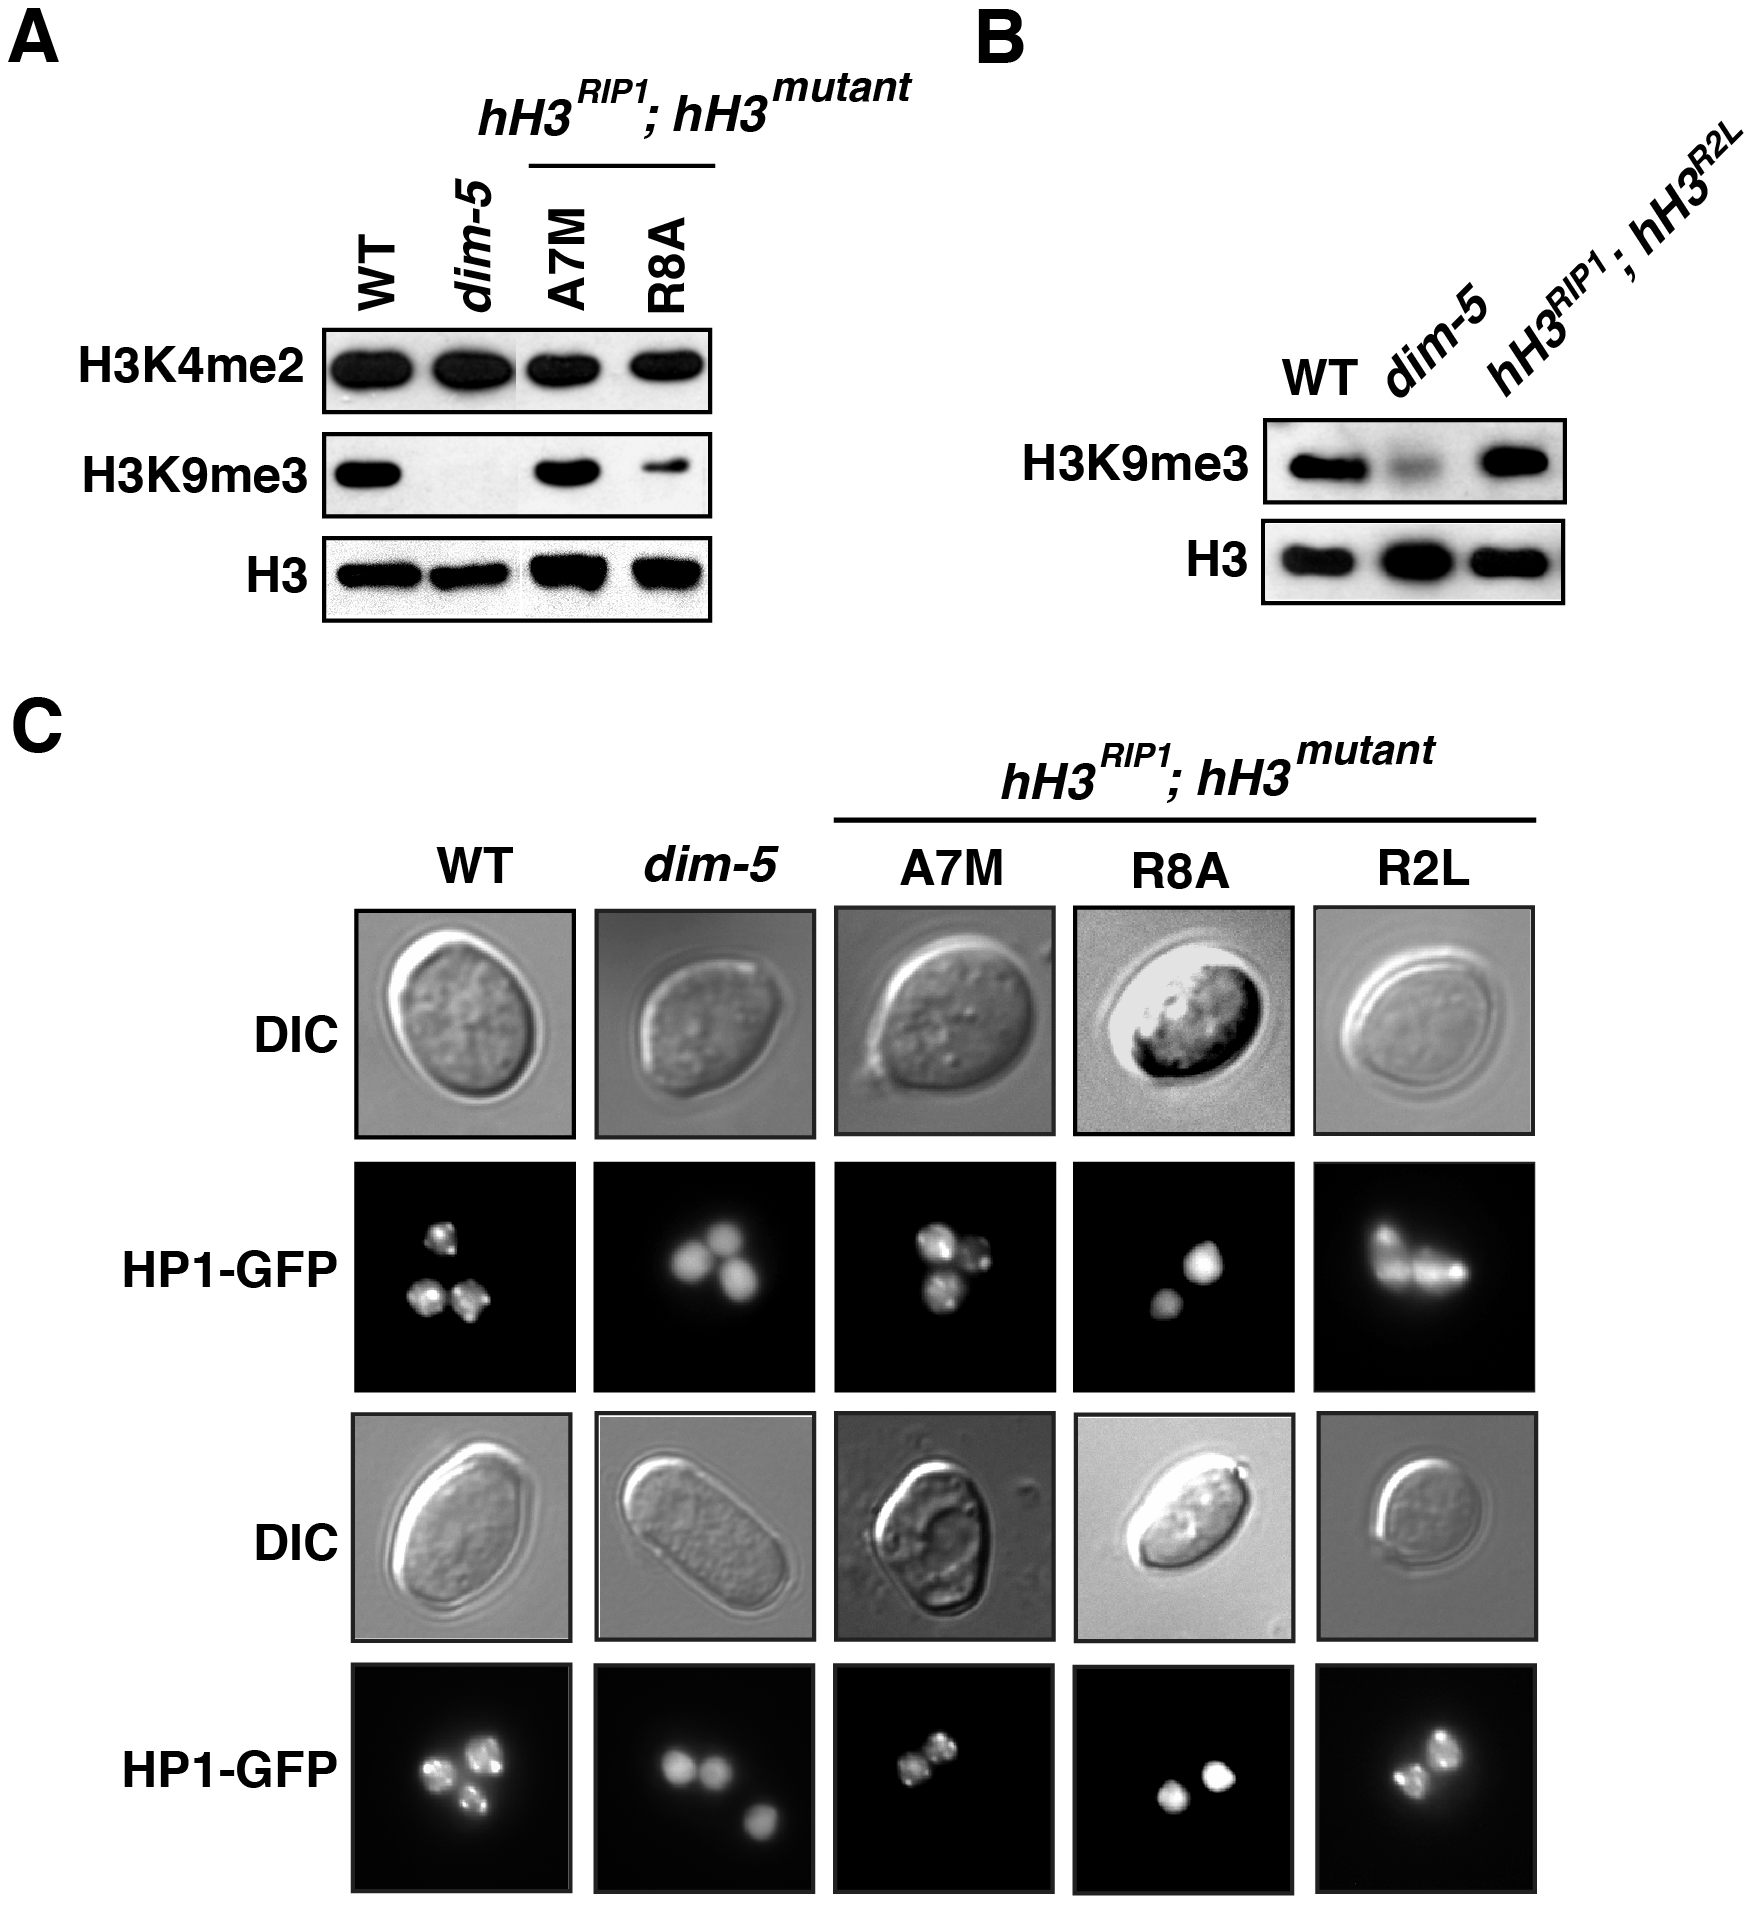 Reduced H3K9 methylation and HP1 binding in selected <i>hH3</i> substitution strains.